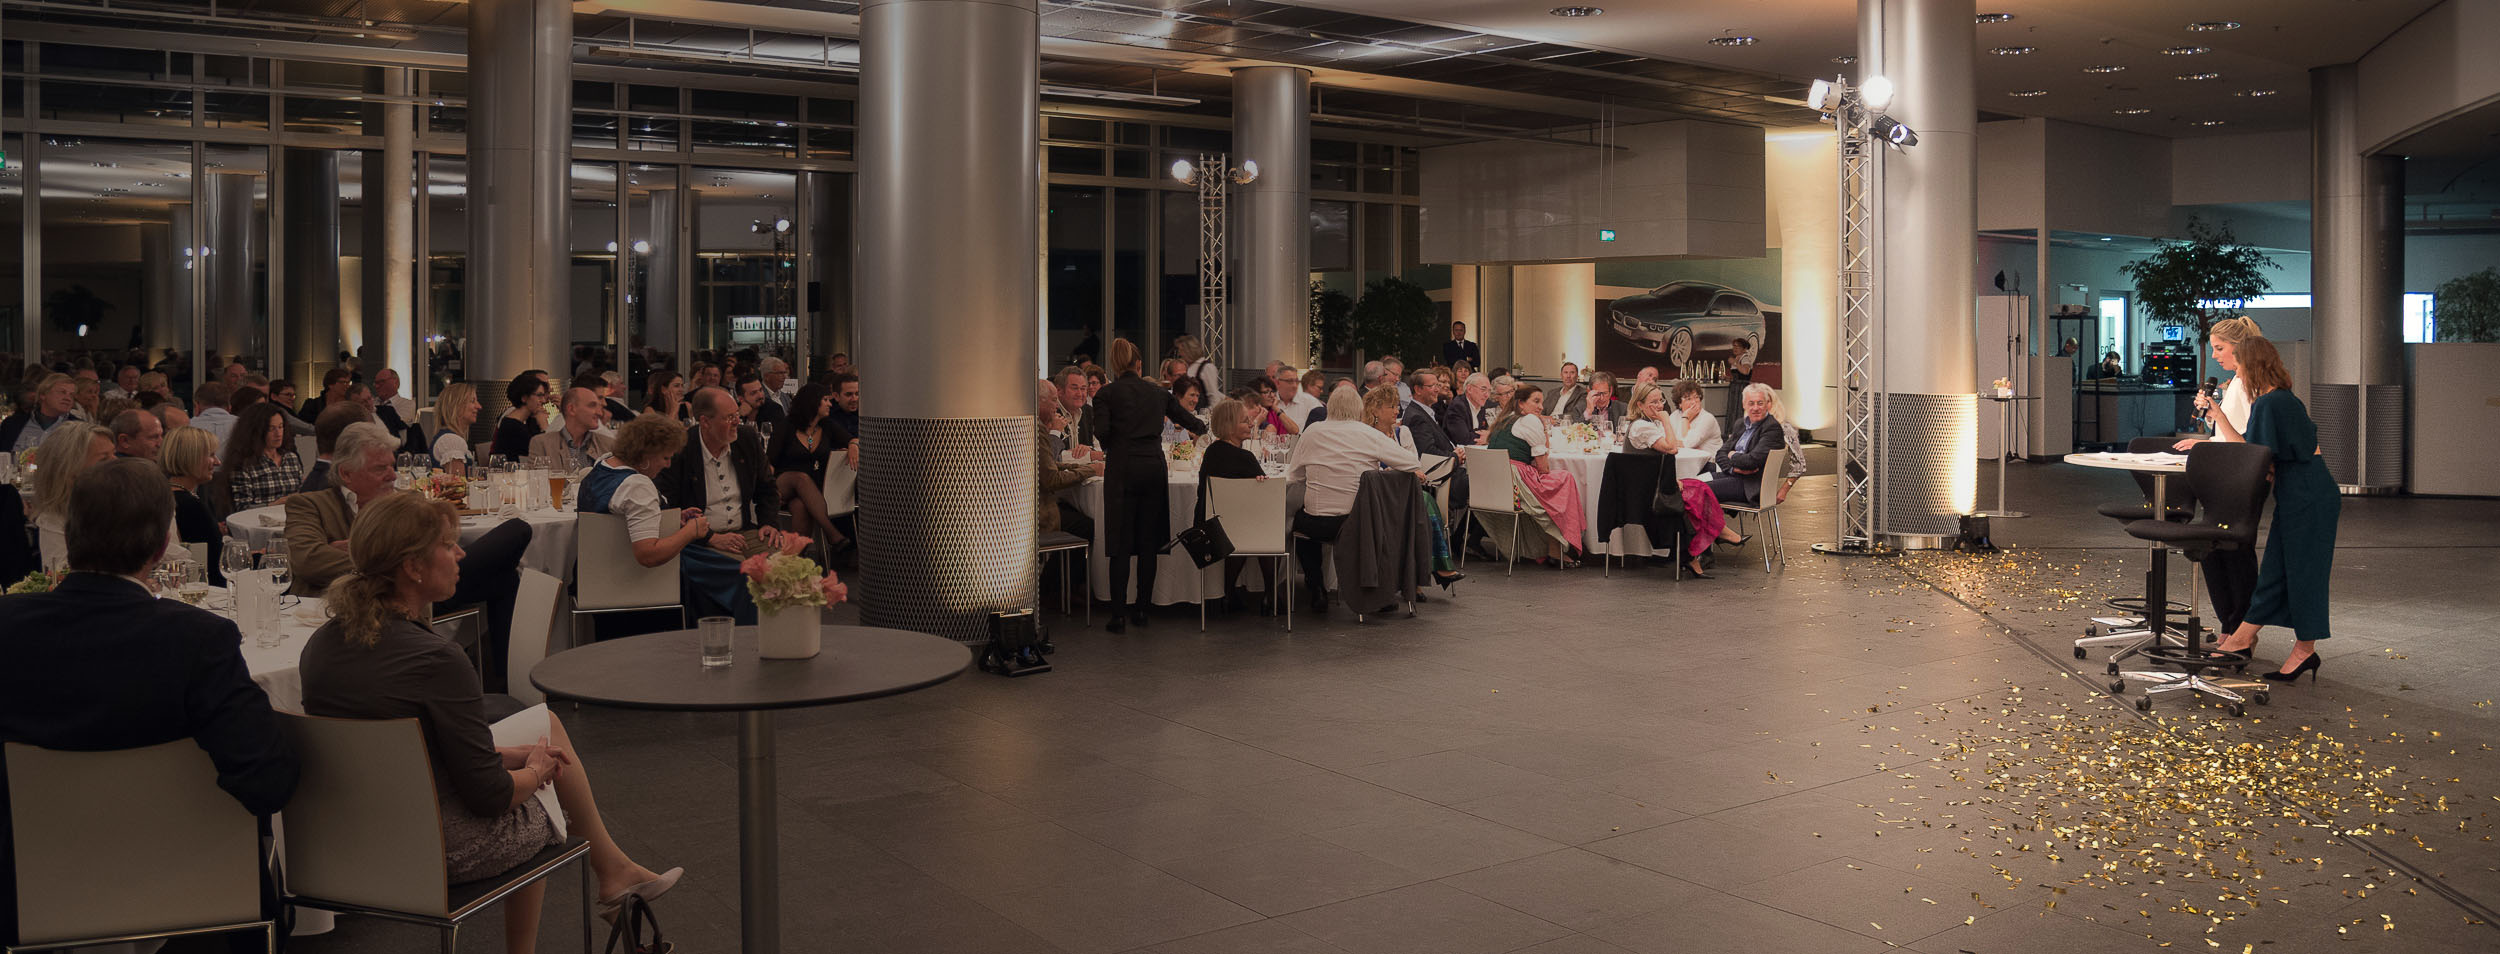 Event photography - Munich, Germany